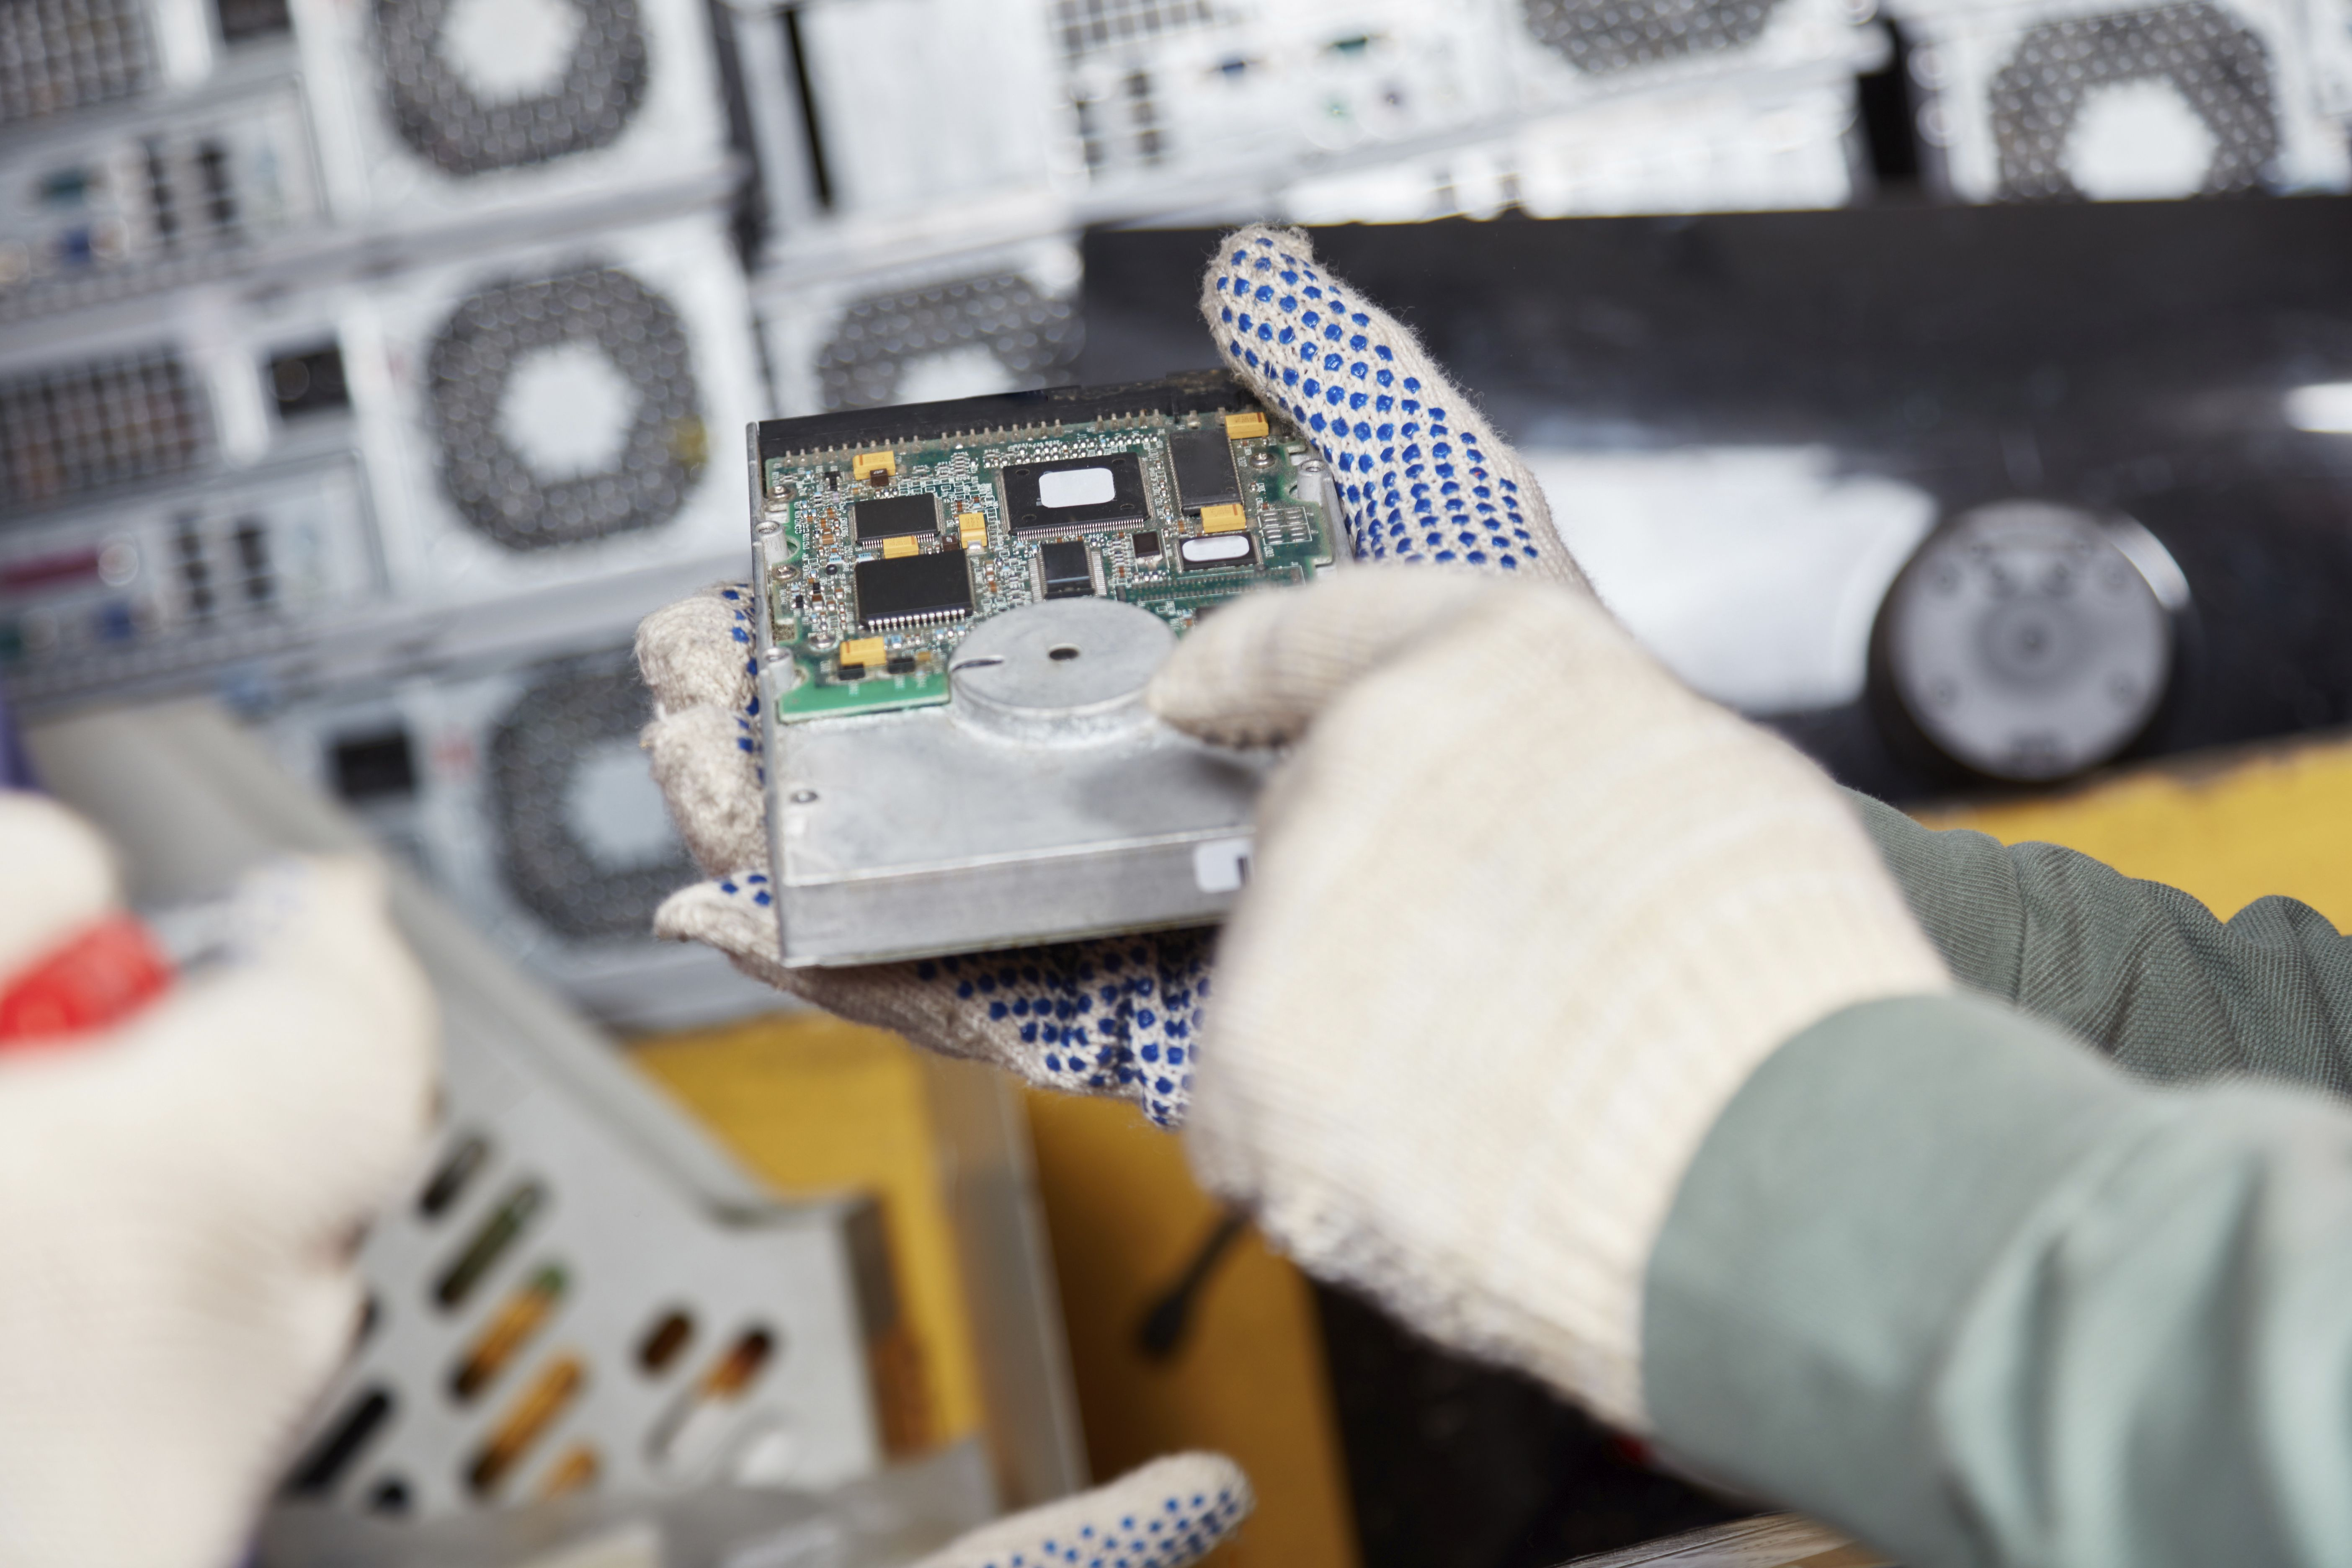 How To Recycle Your Analog Or Digital Tv And More Circuit Board Recycling On Printed Blue Industrial